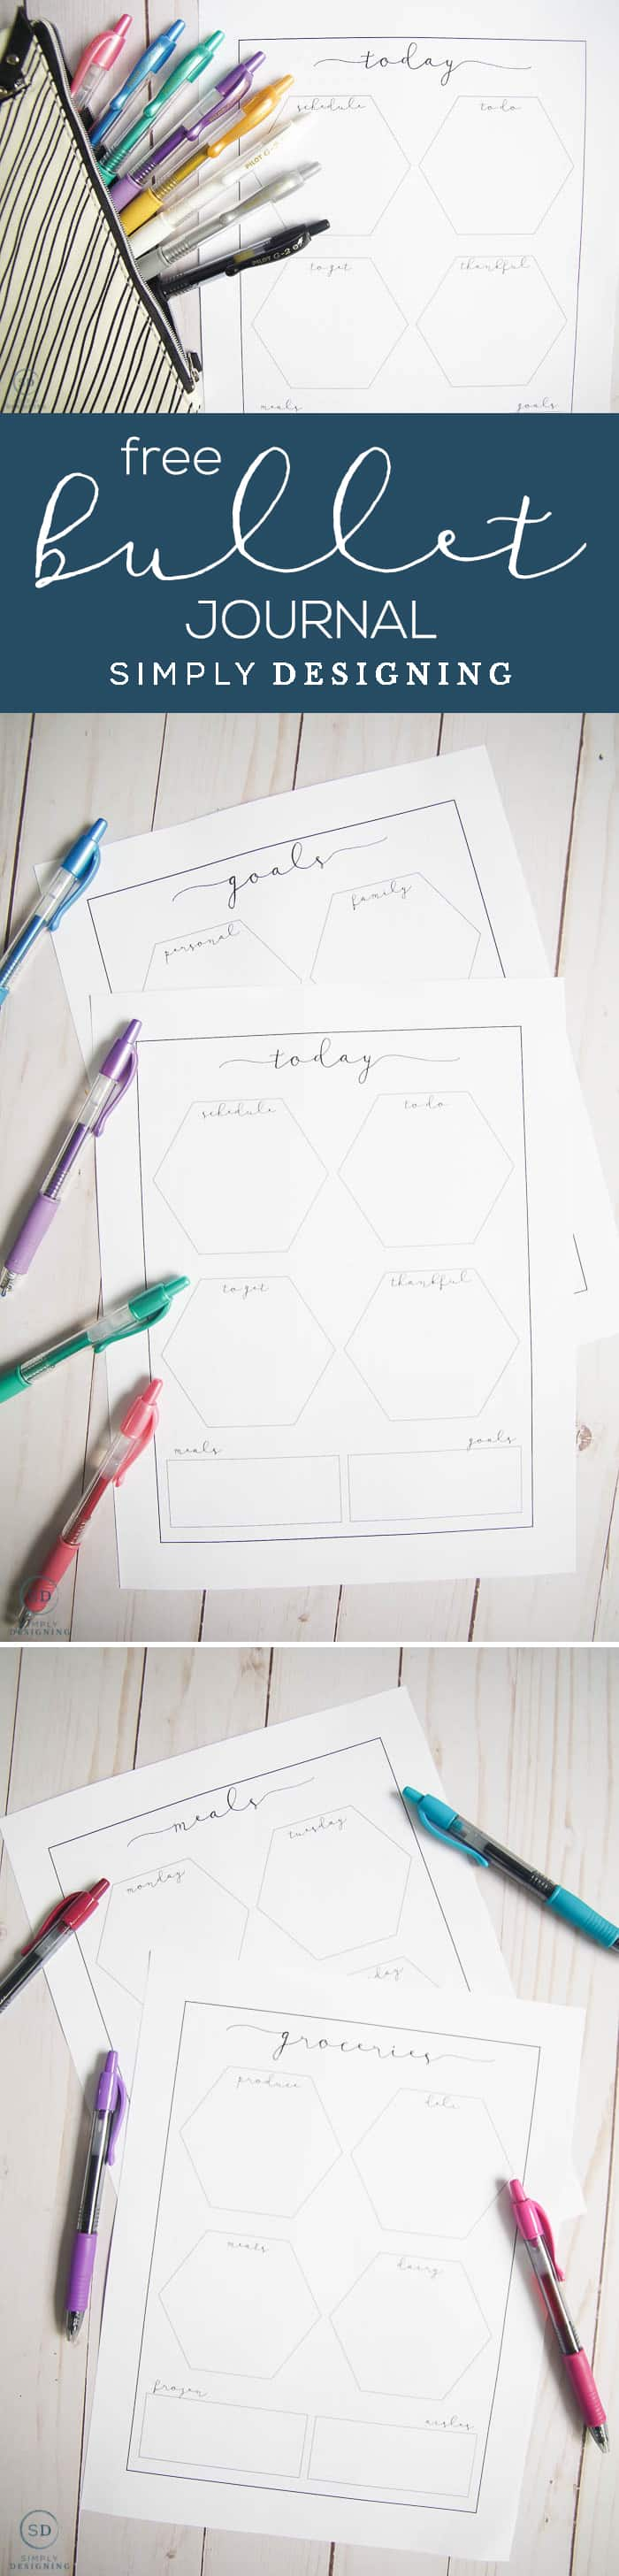 Easy and actionable bullet journal ideas plus free journal printables - the best way to curate a beautiful and mindful life